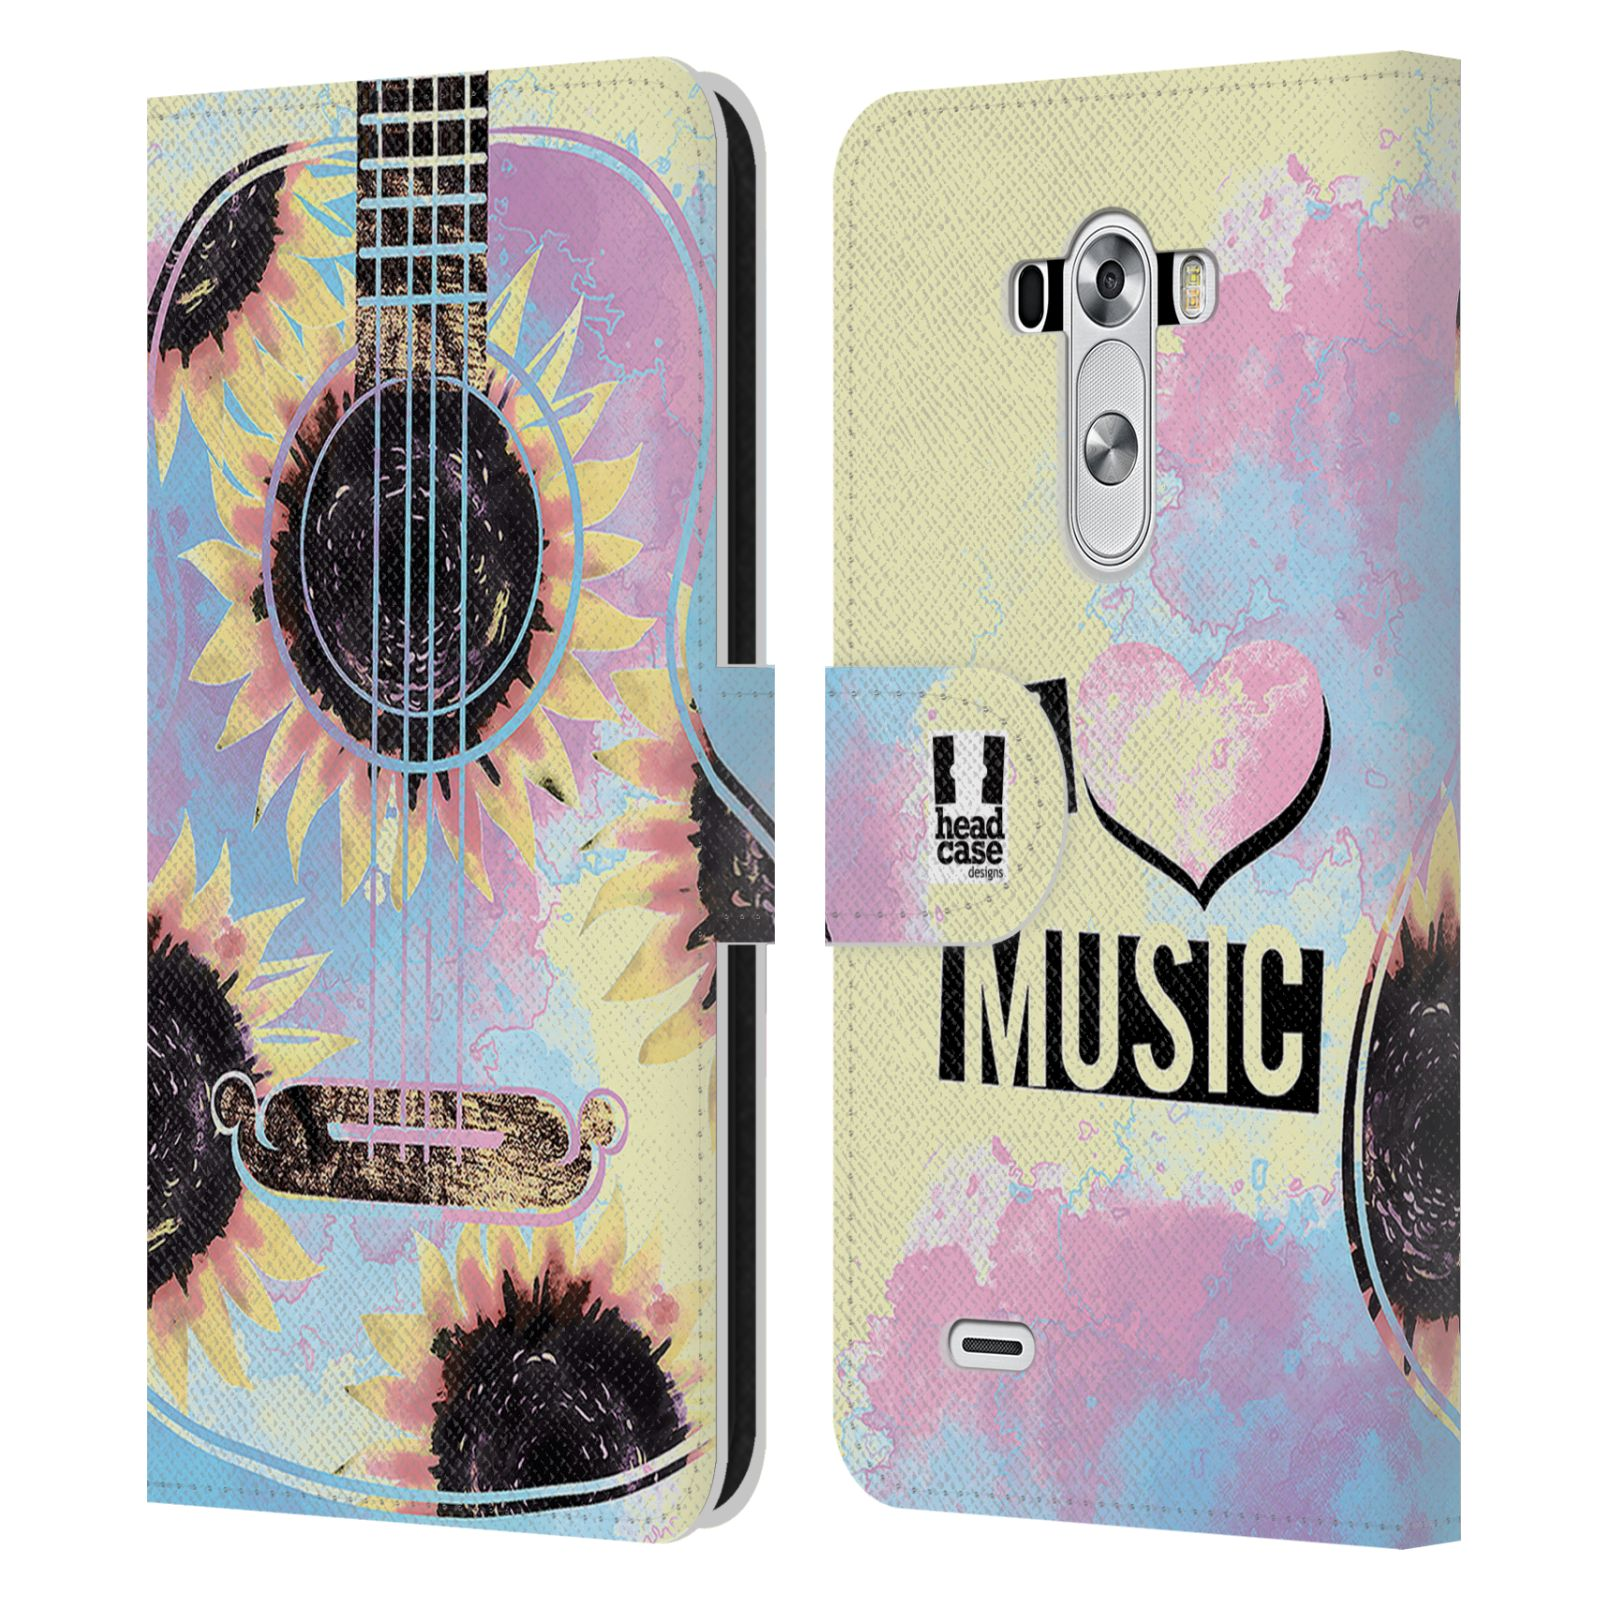 Music Book Cover Ideas : Head case designs all about music leather book wallet